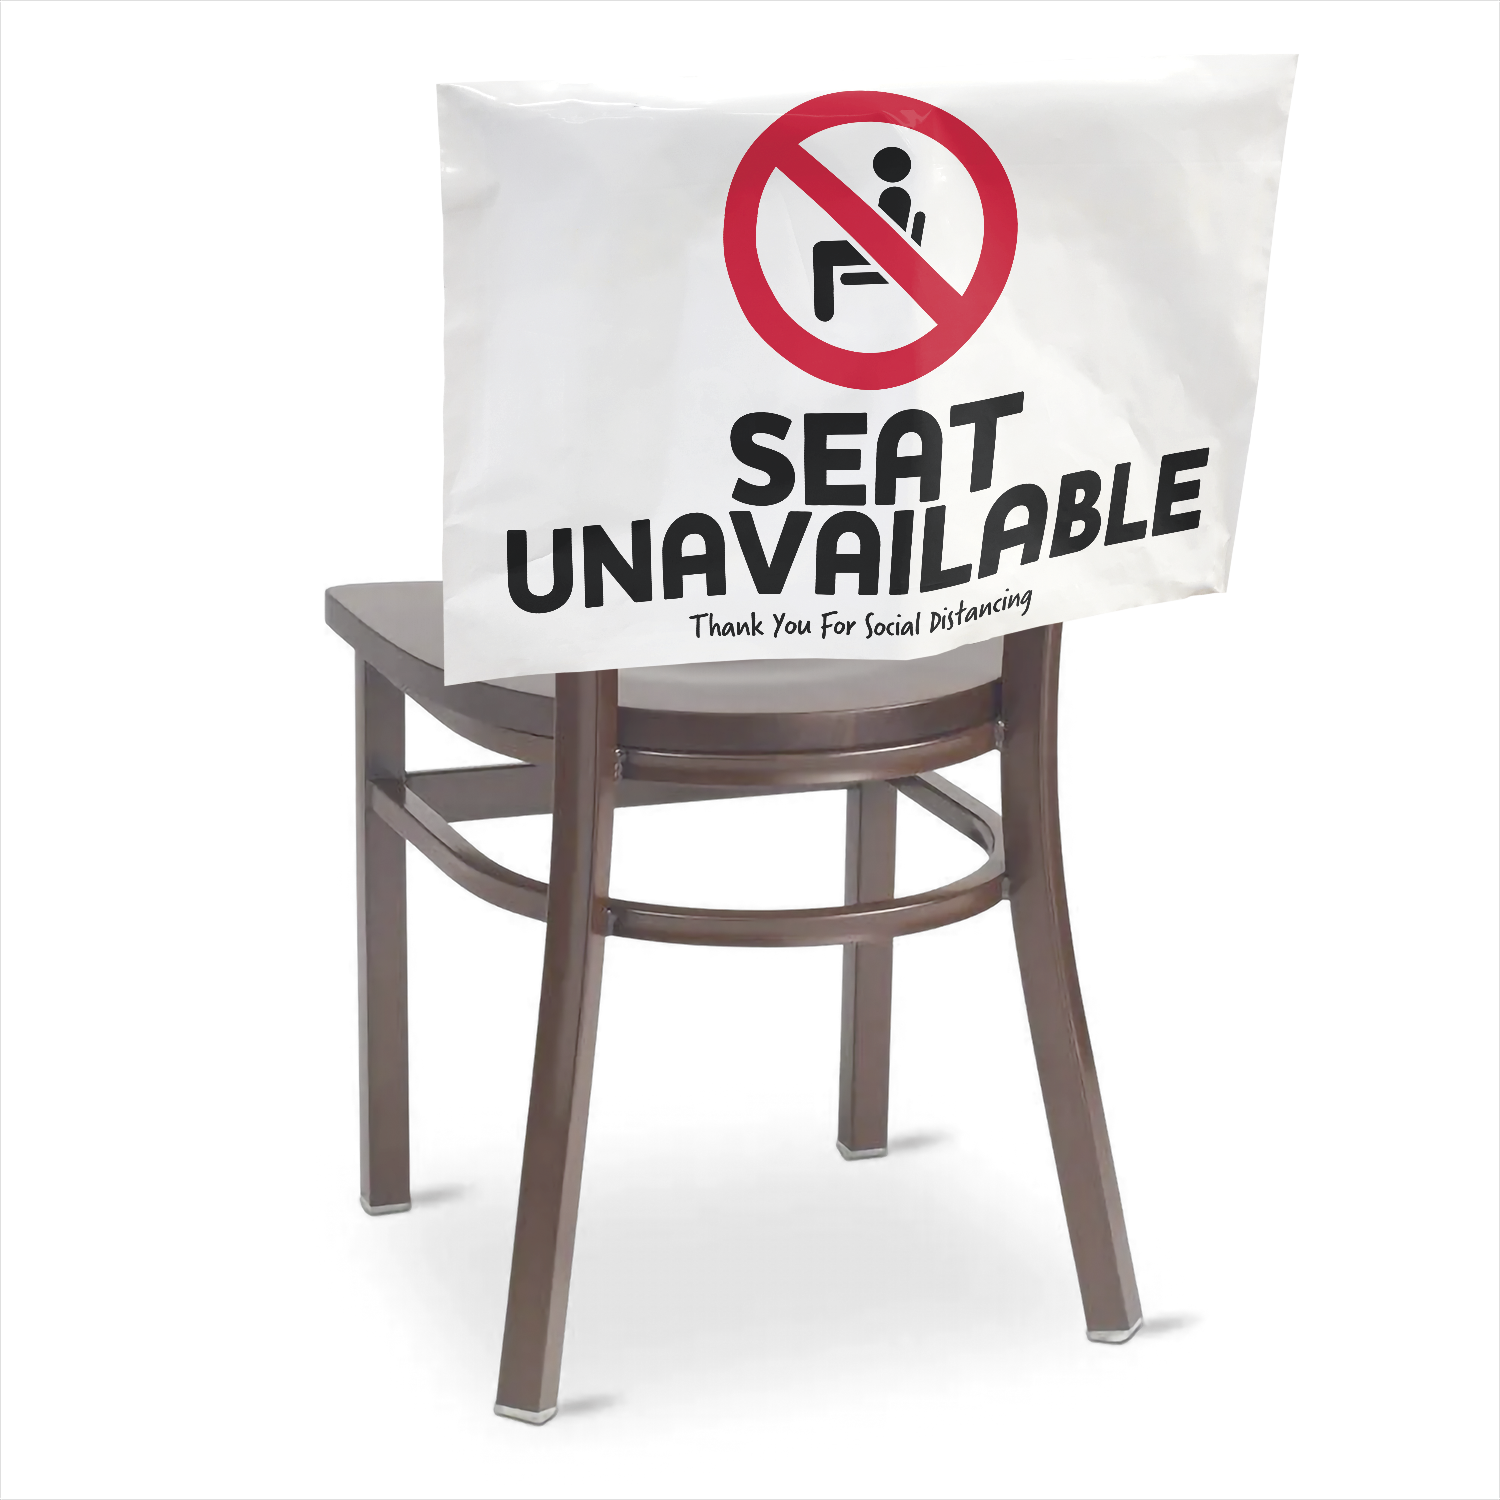 https://www.sswprinting.com/images/products_gallery_images/595801_Chair-Back_Seat-Unavailable_hi-res_1_34.png